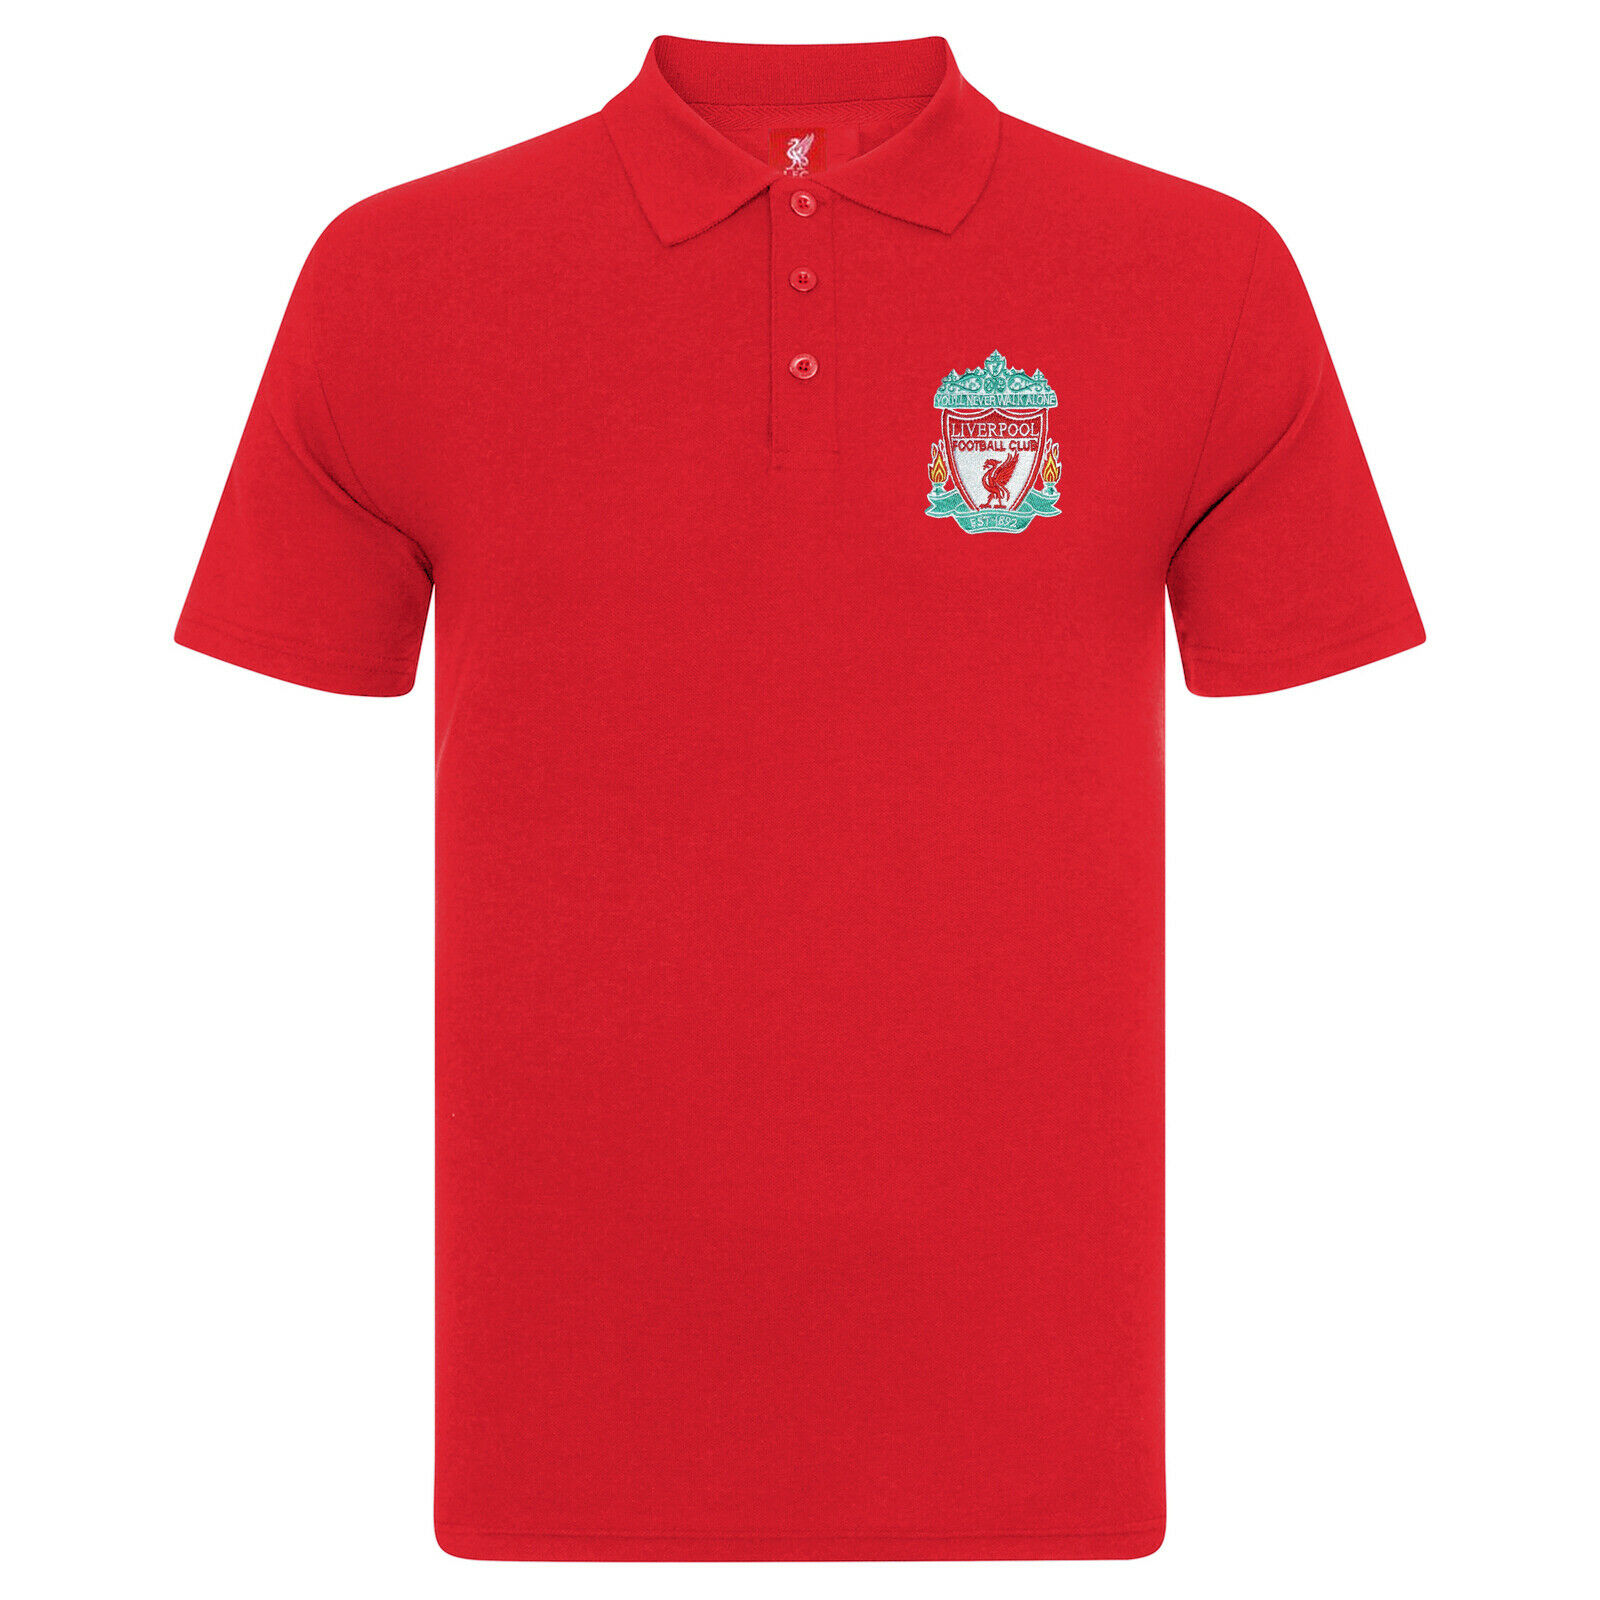 XX-Large Red Polo Shirt Liverpool